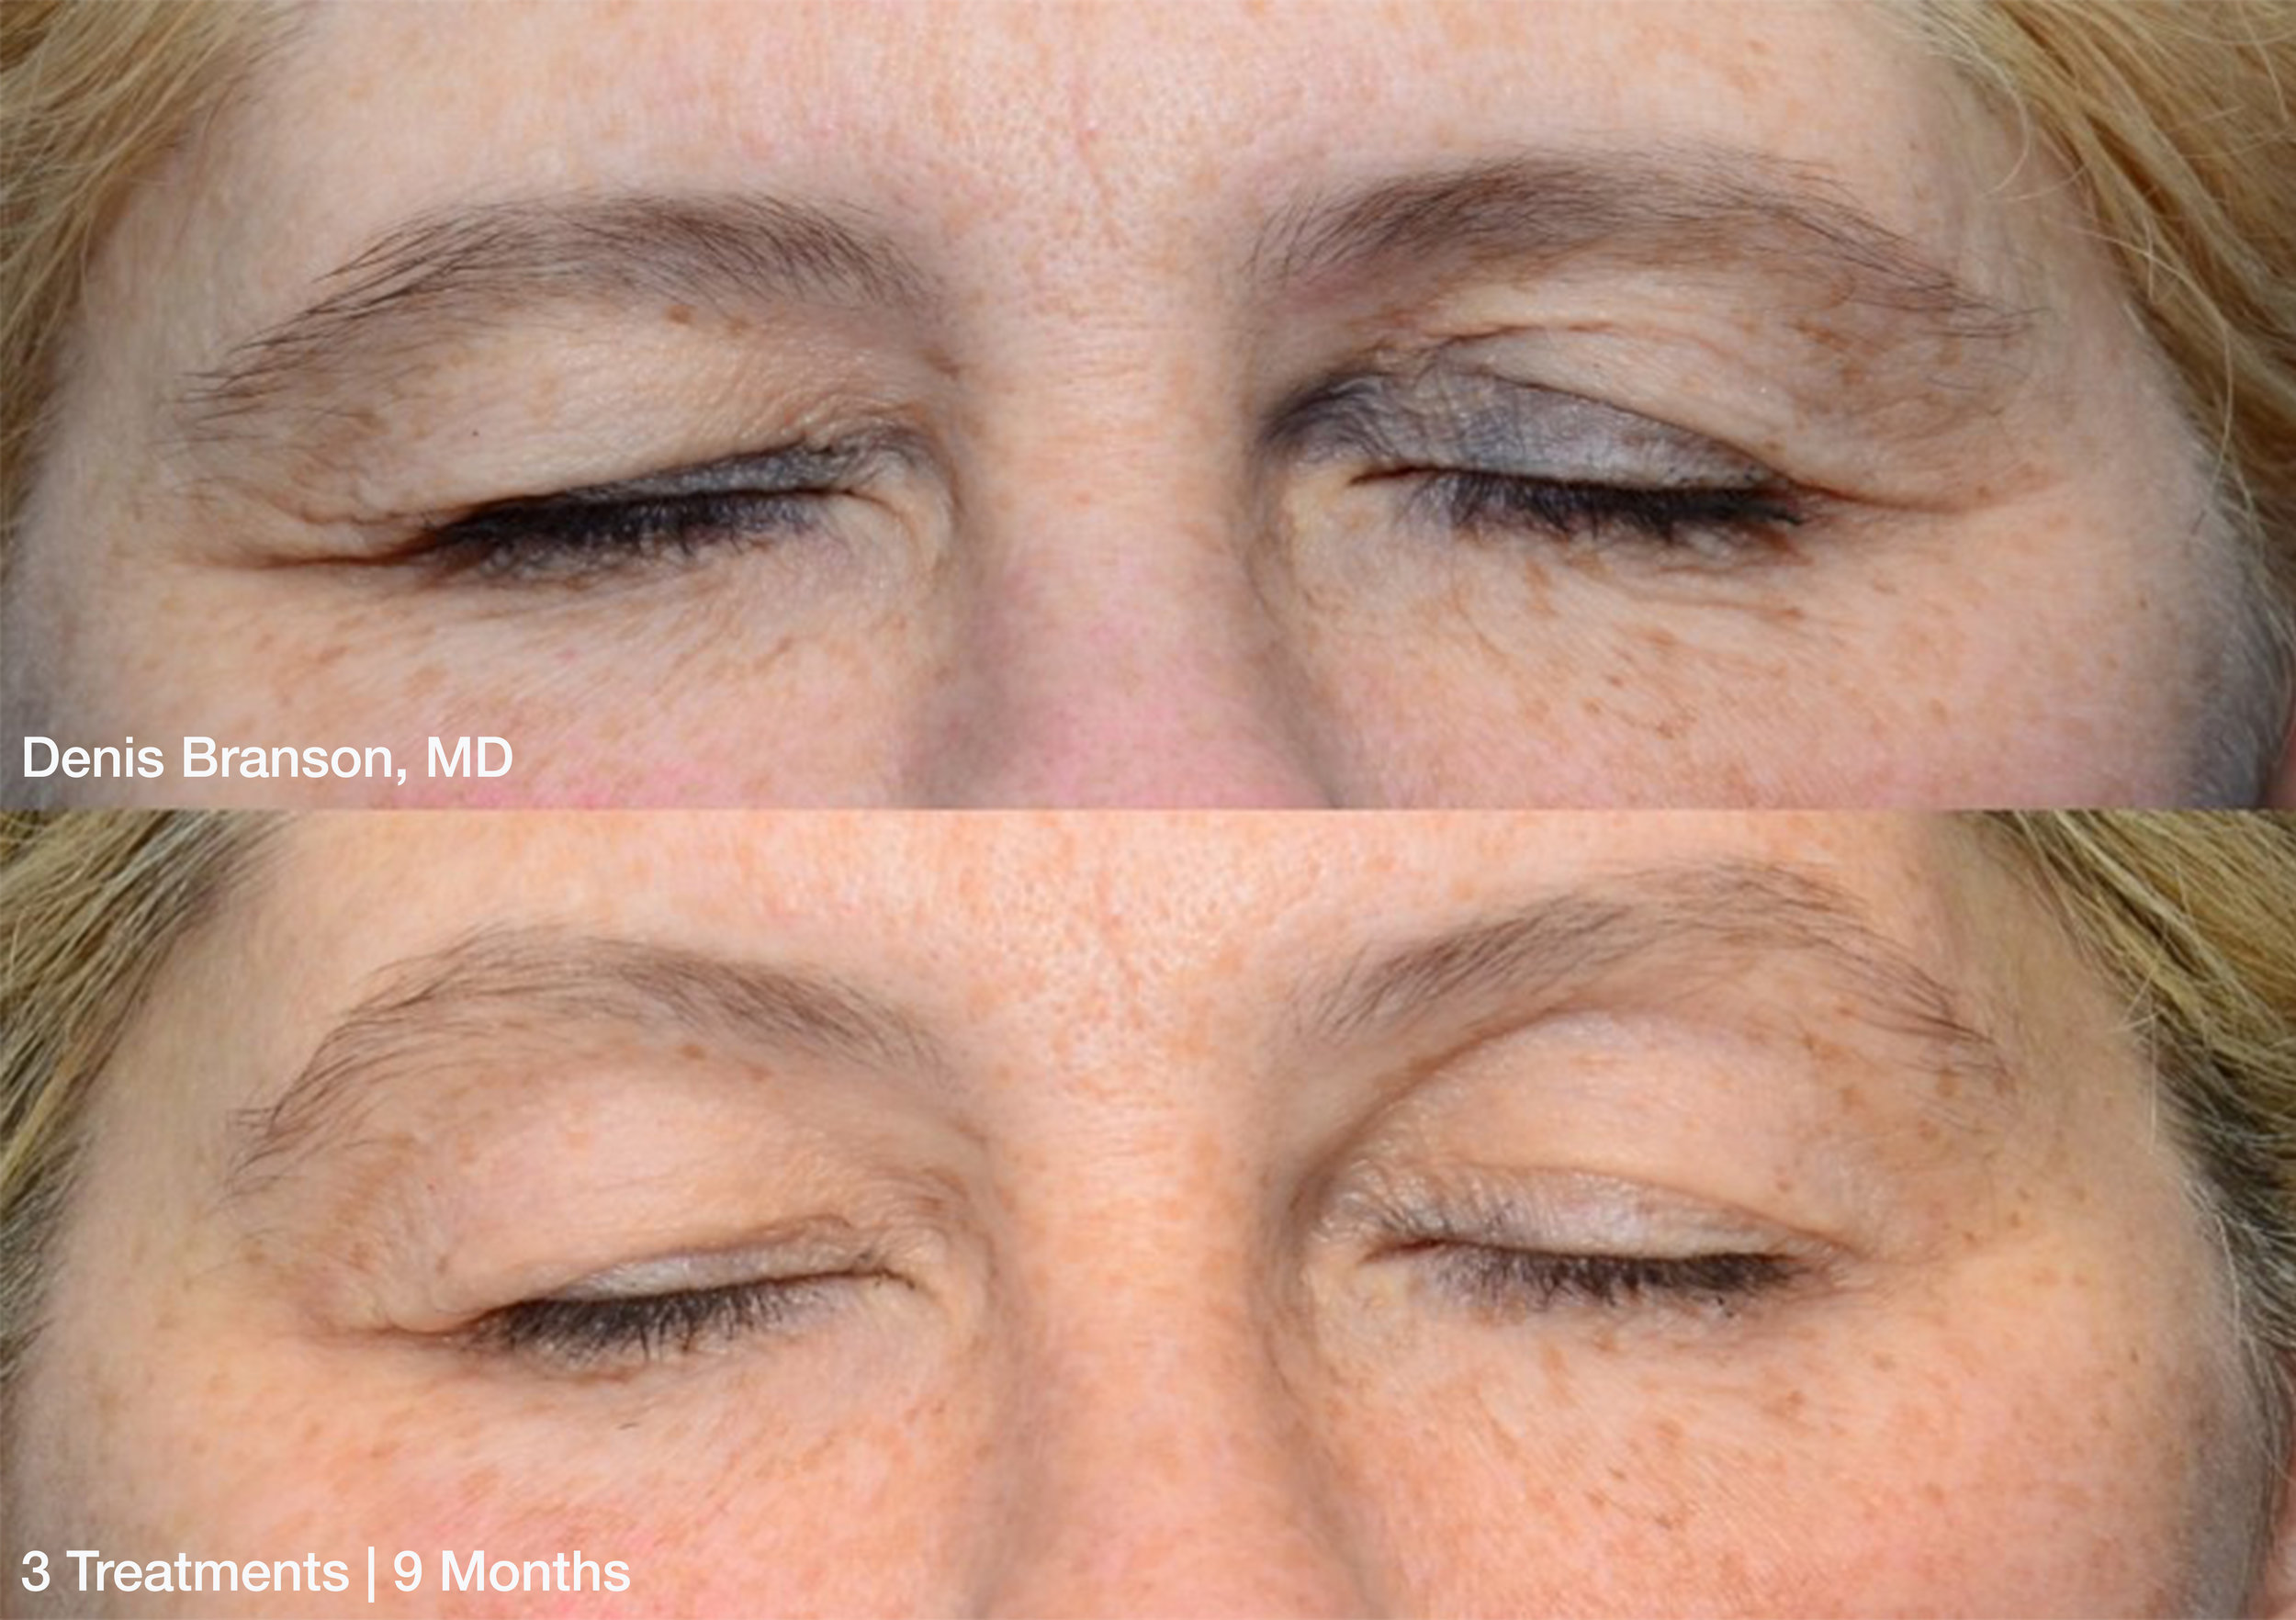 Denis-Branson_ThermiSmooth-Face-Eyes_3-treatments-9-months_Patient-1.jpg